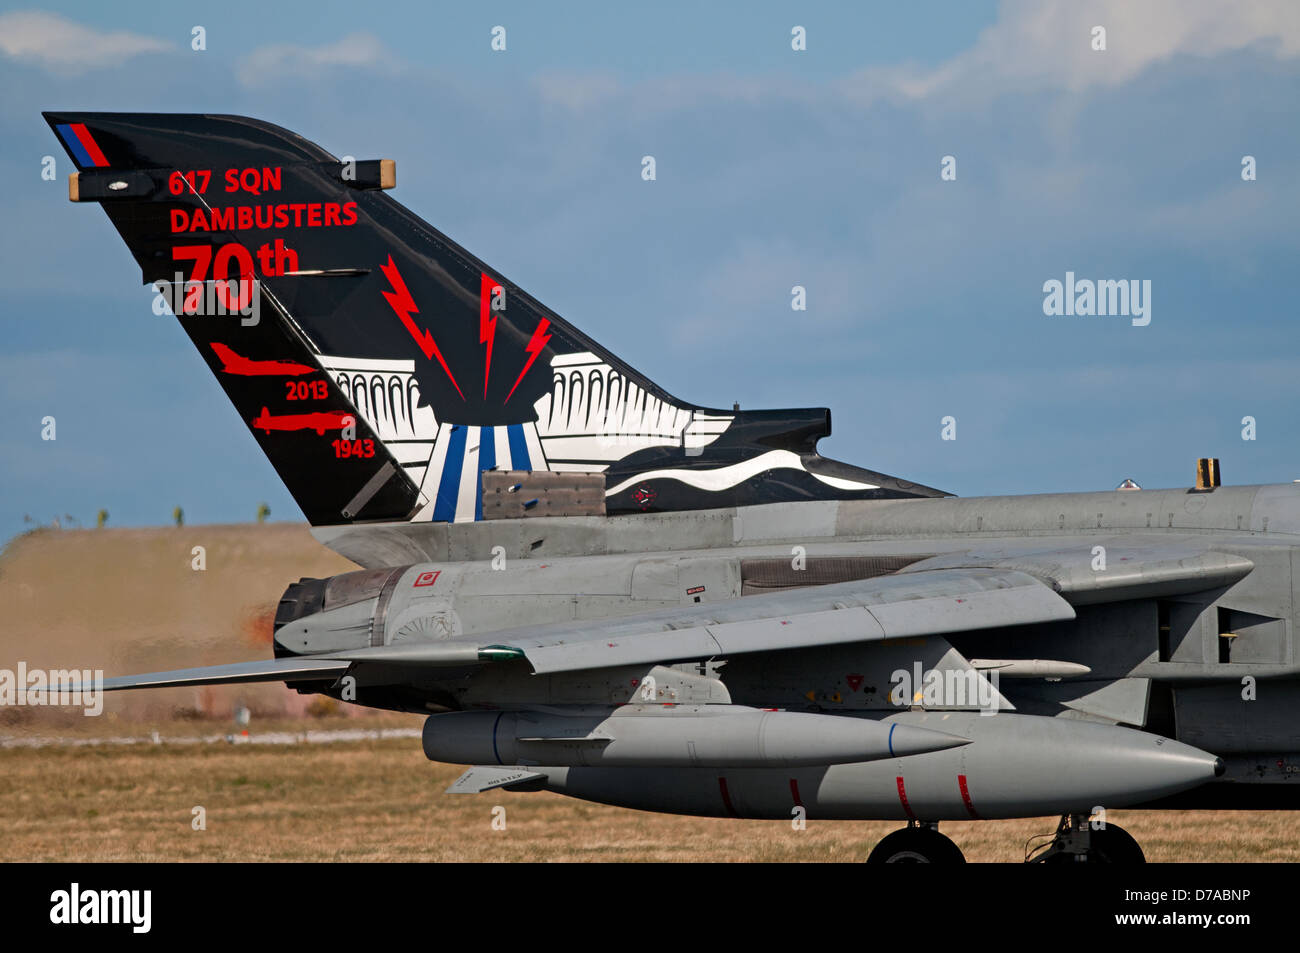 The Specially Painted Tornado GR4 Of 617 Dambusters Sqn At RAF Lossiemouth SCO 9010